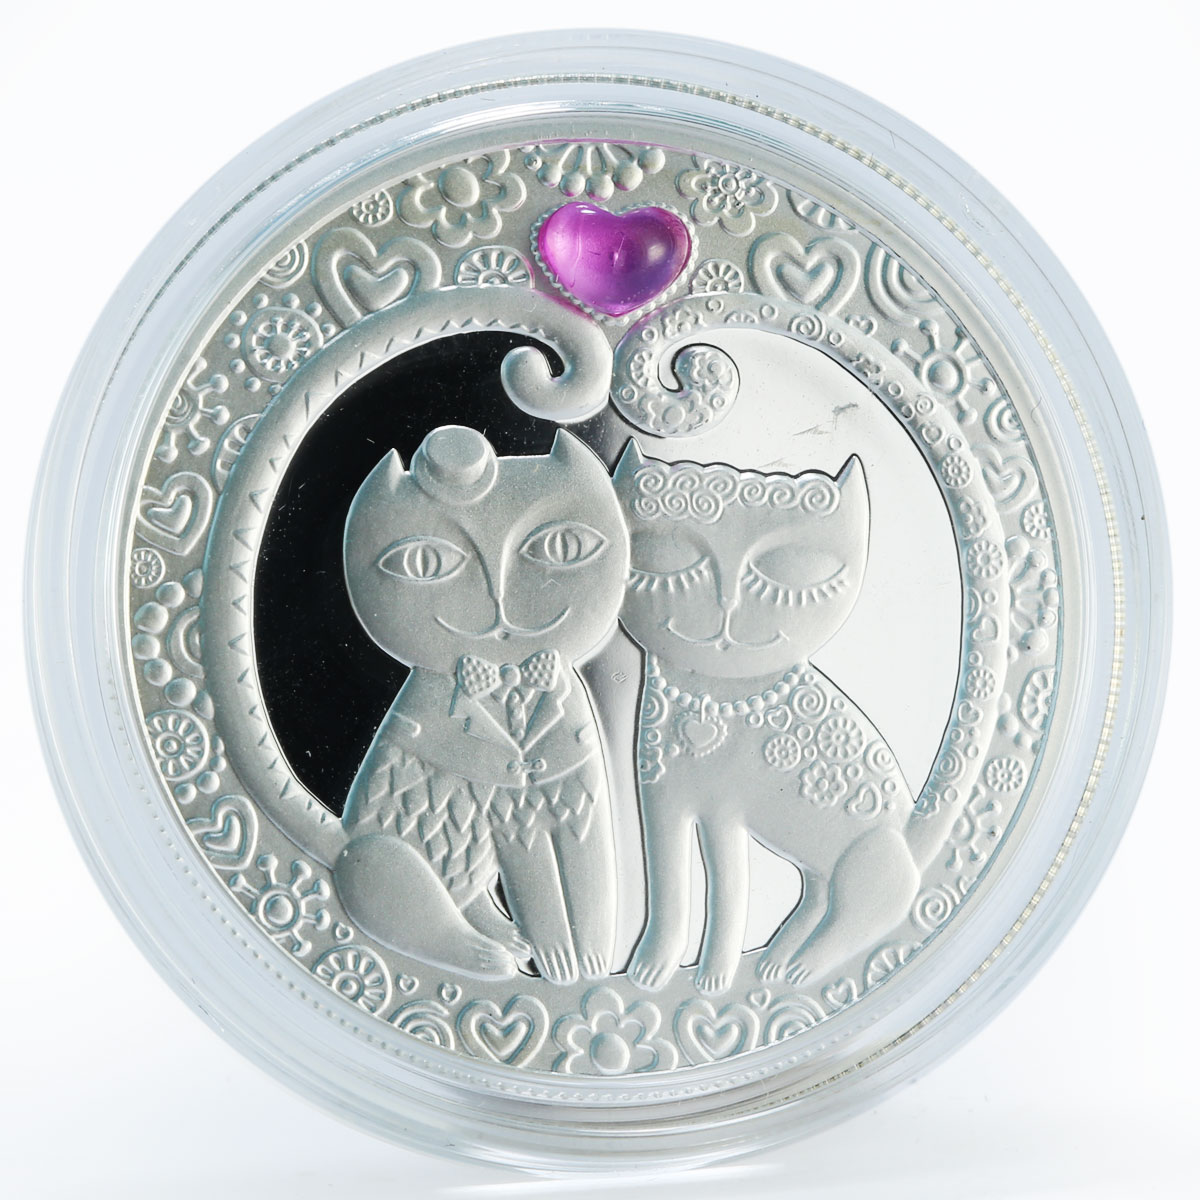 Belarus 20 rubles My Love Cats corundum silver coin 2011